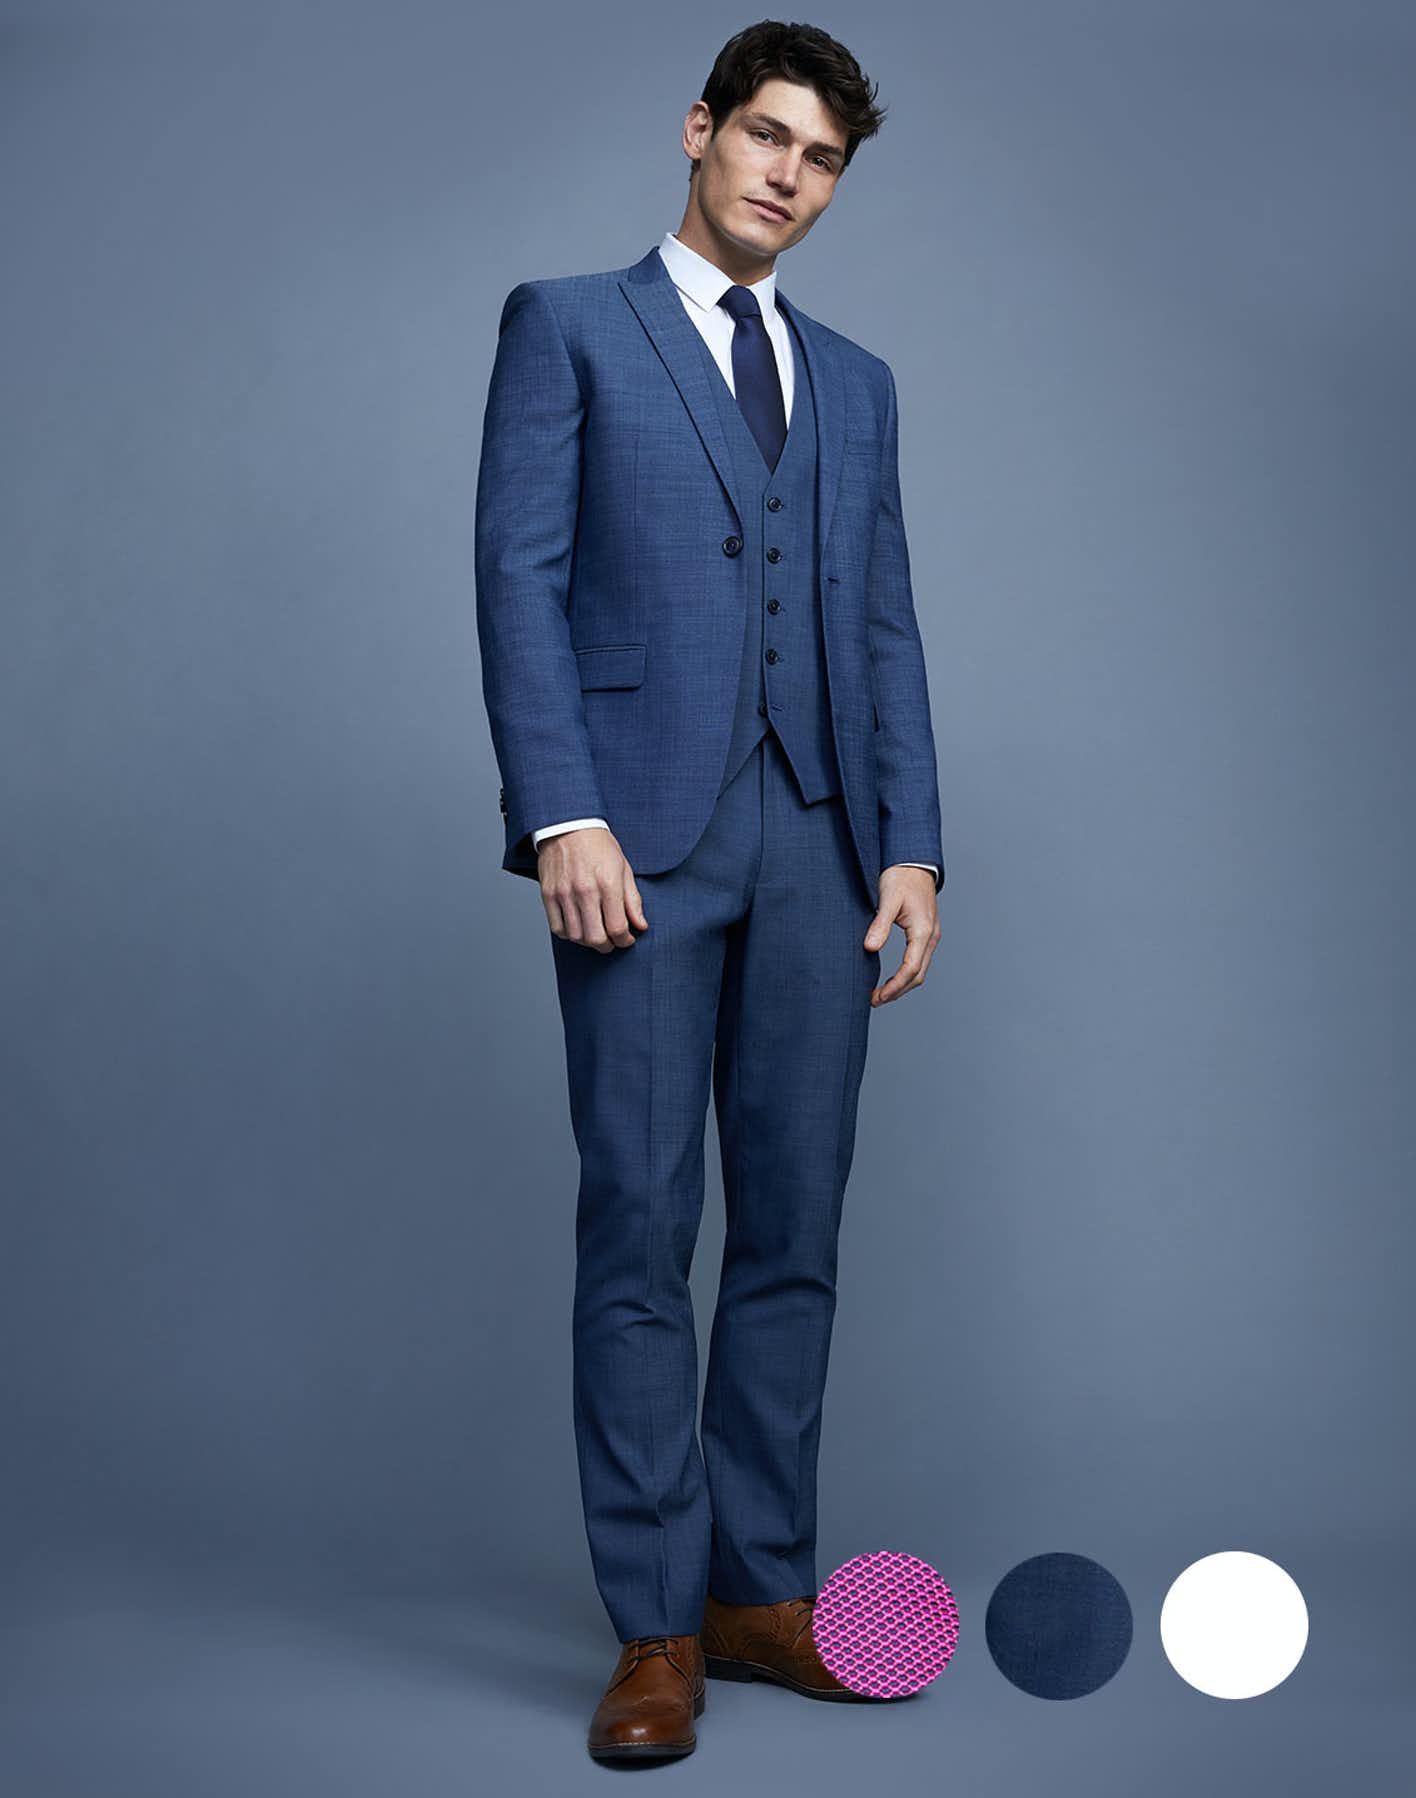 6525553239d7 Men's Tailoring Colour & Styling Advice – Matalan